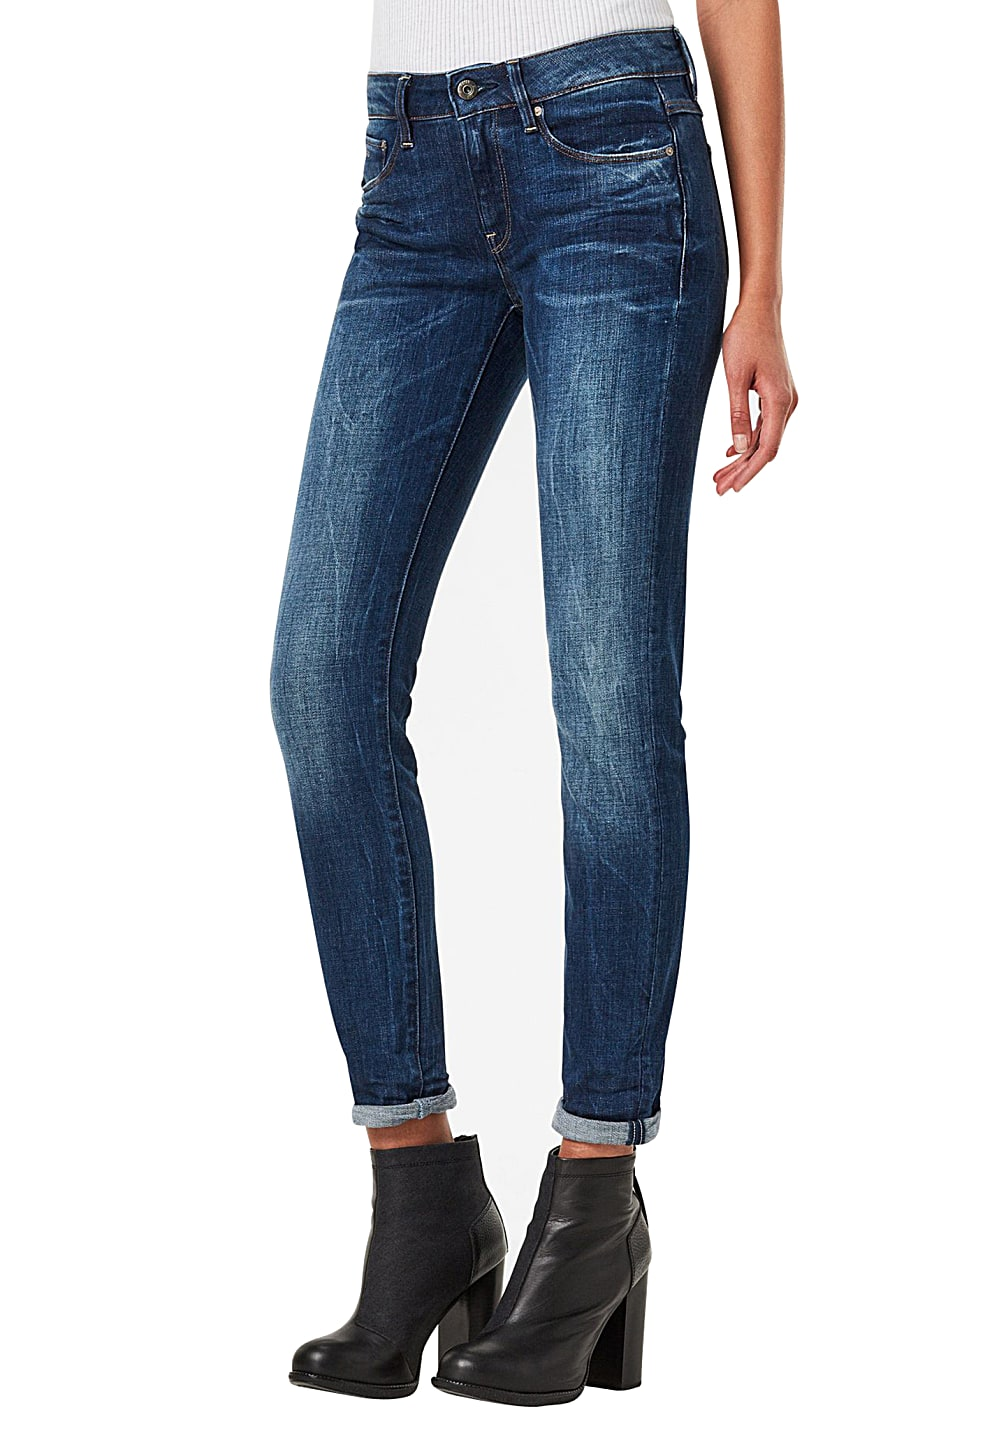 G-STAR RAW 3301 High Skinny - Jeans für Damen - Blau